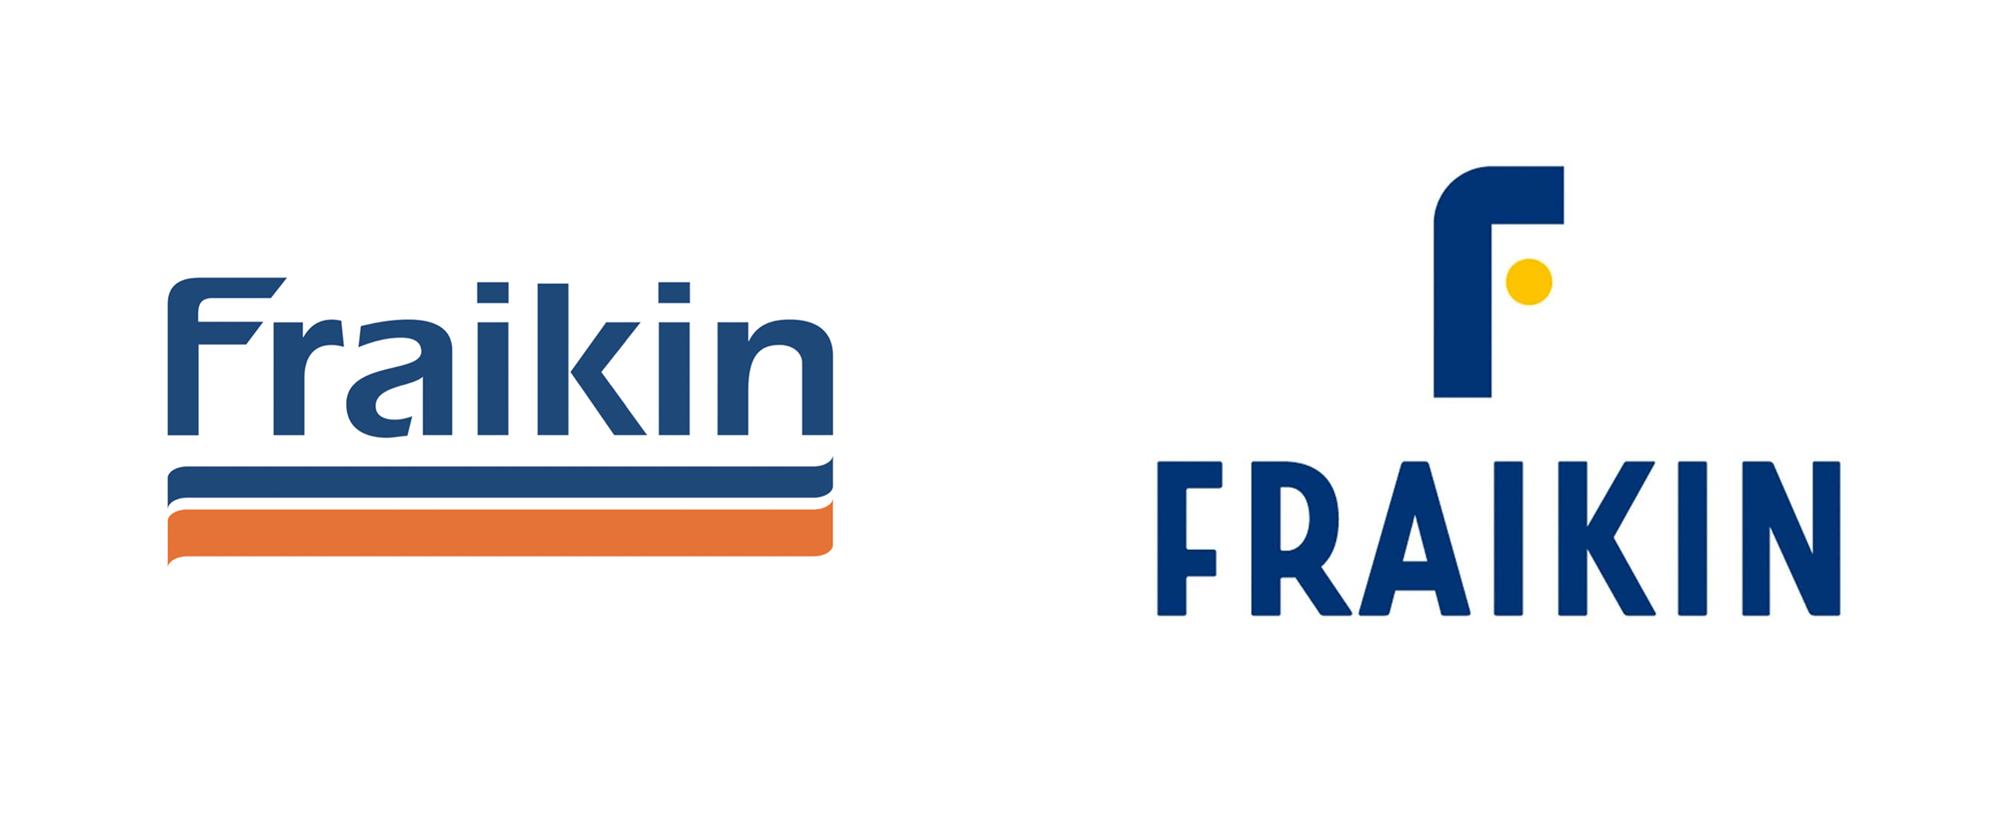 New Logo and Identity for Fraikin by Epoka